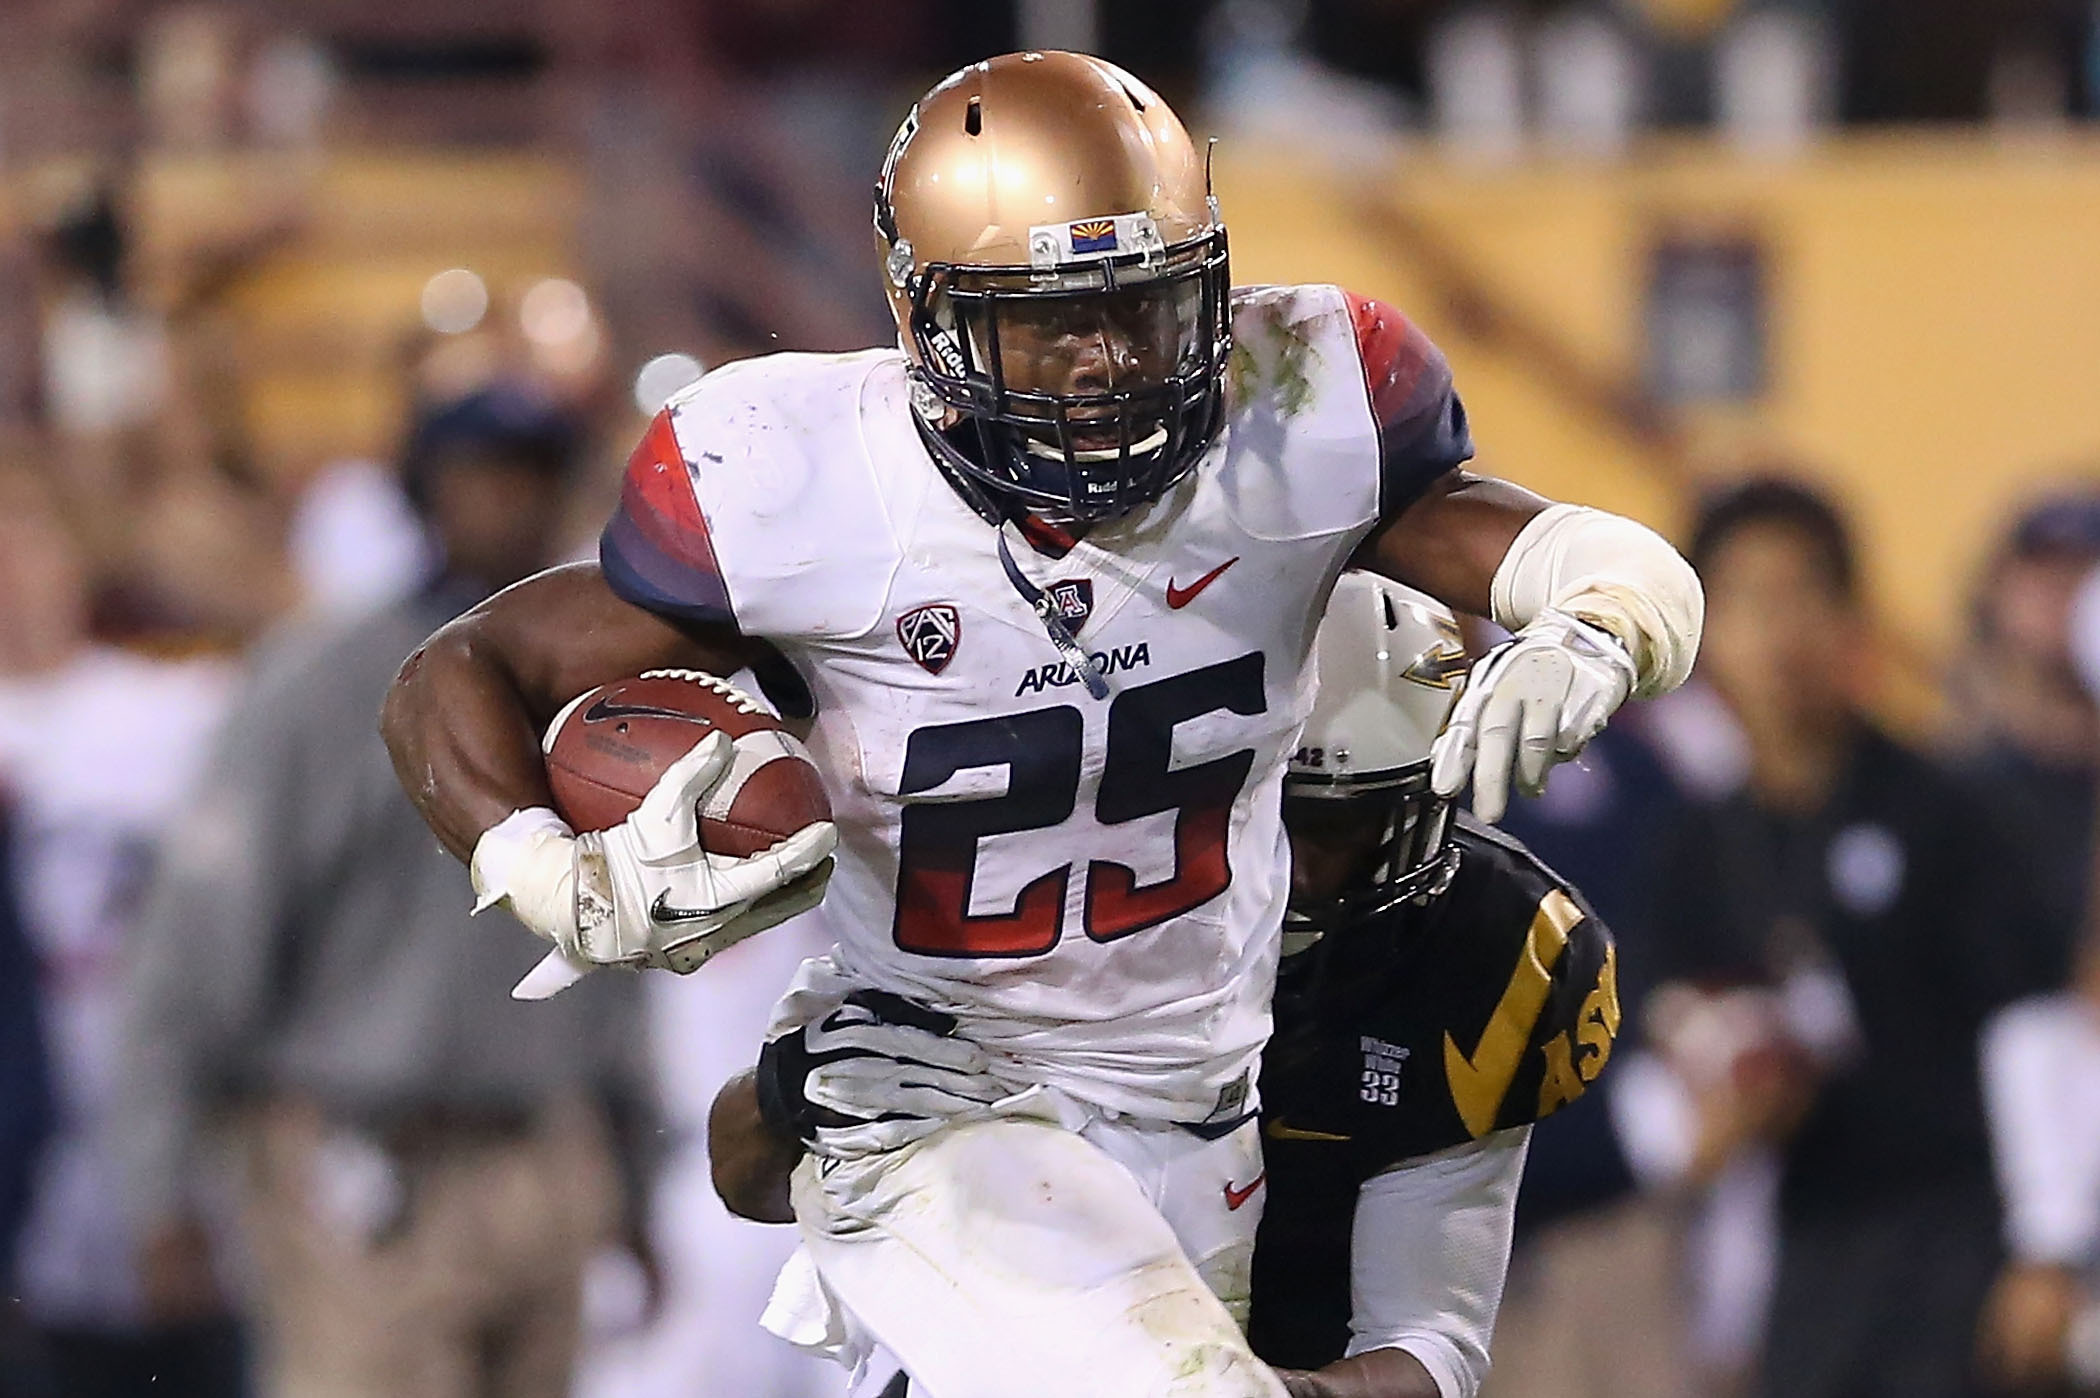 Nike jerseys for sale - Arizona Wildcats Football: Top 5 Reasons Why Ka'Deem Carey Snubbed ...